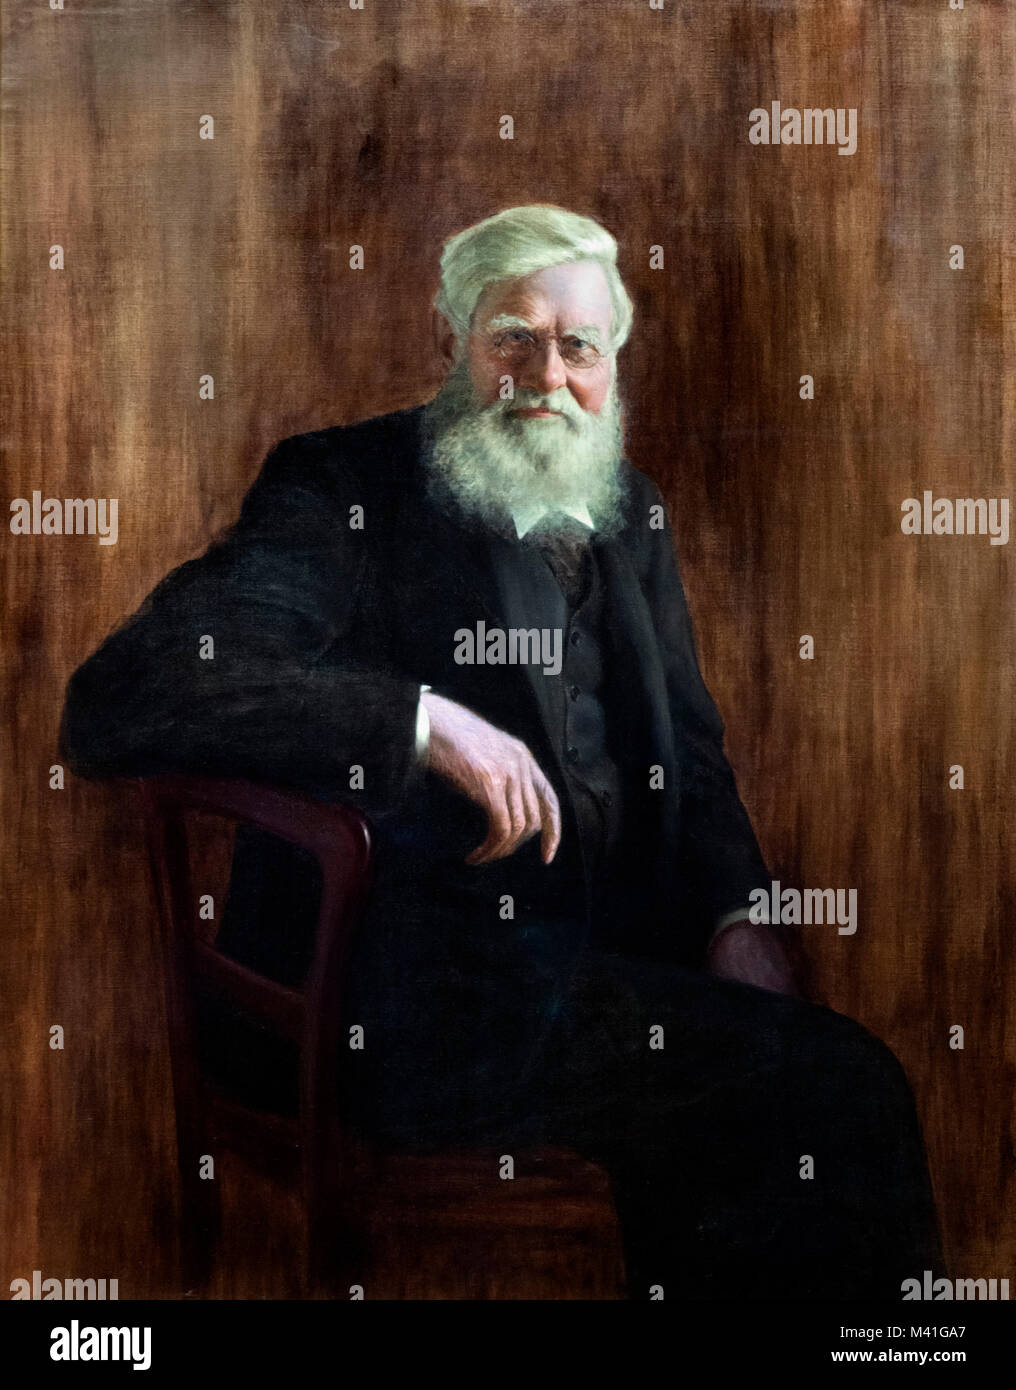 Alfred Wallace. Portrait of the English naturalist, Alfred Russel Wallace (1823-1913), by J W Beaufort, 1923 - Stock Image